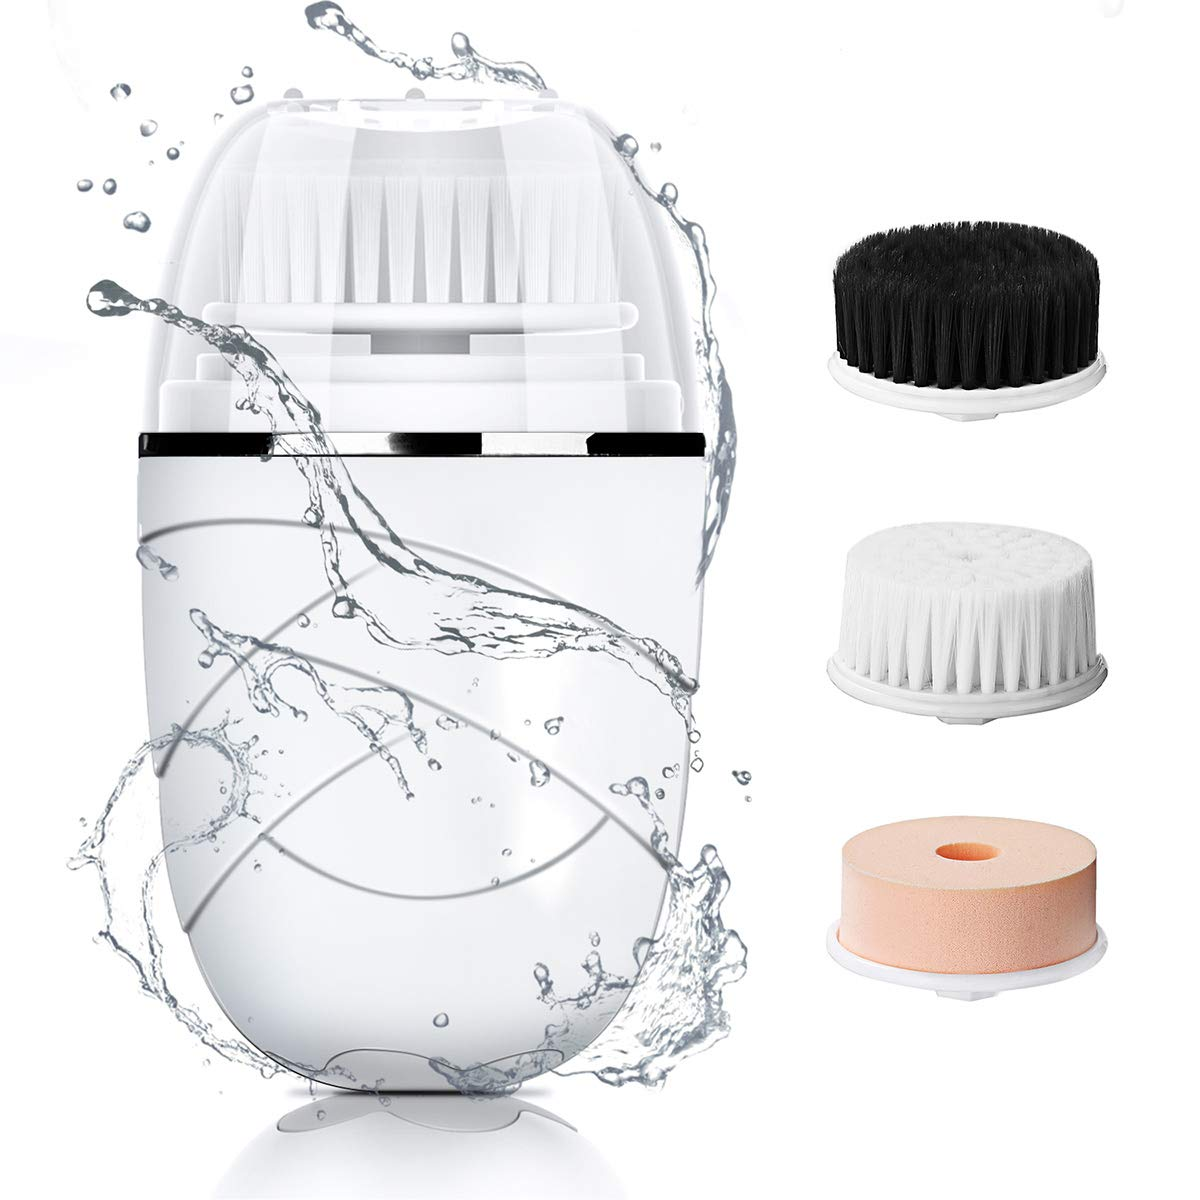 3 in 1 Spin facial cleansing brush